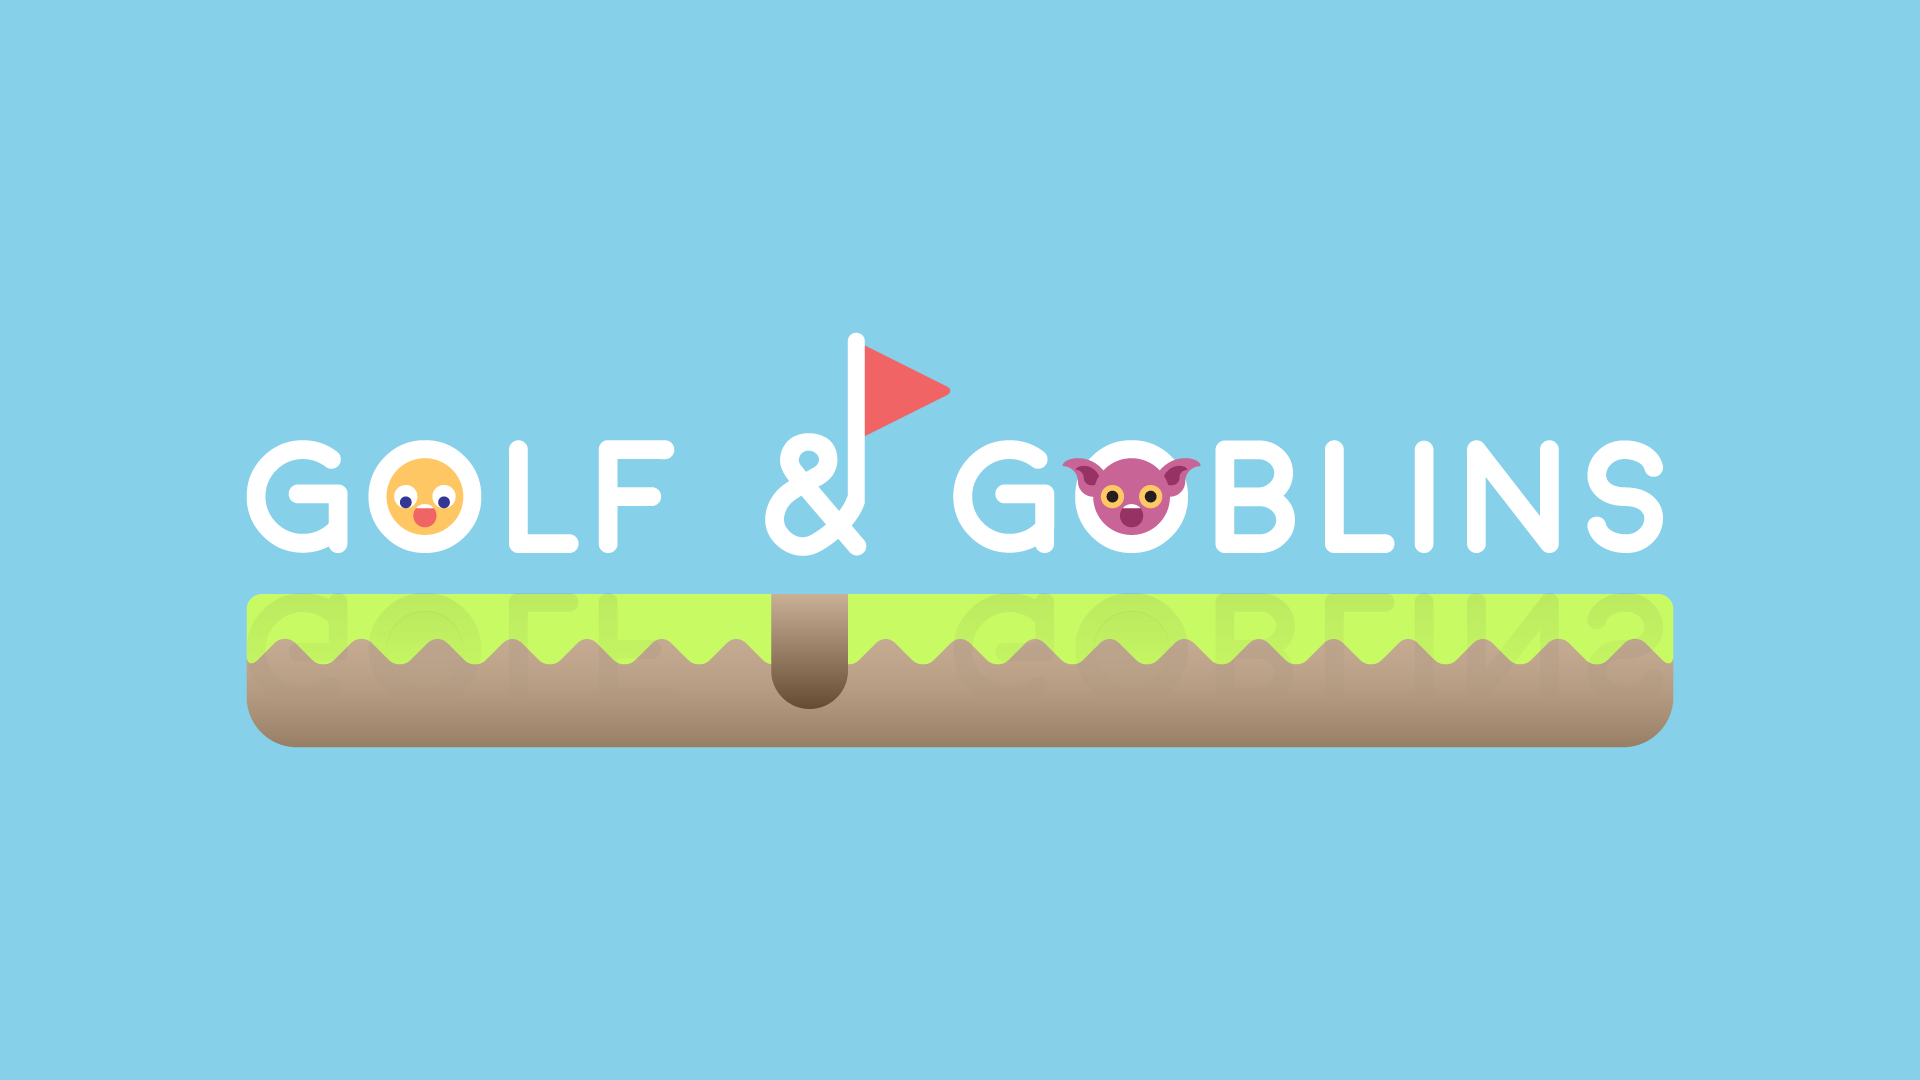 Golf & Goblins Free-To-Play Mobile Re-Design